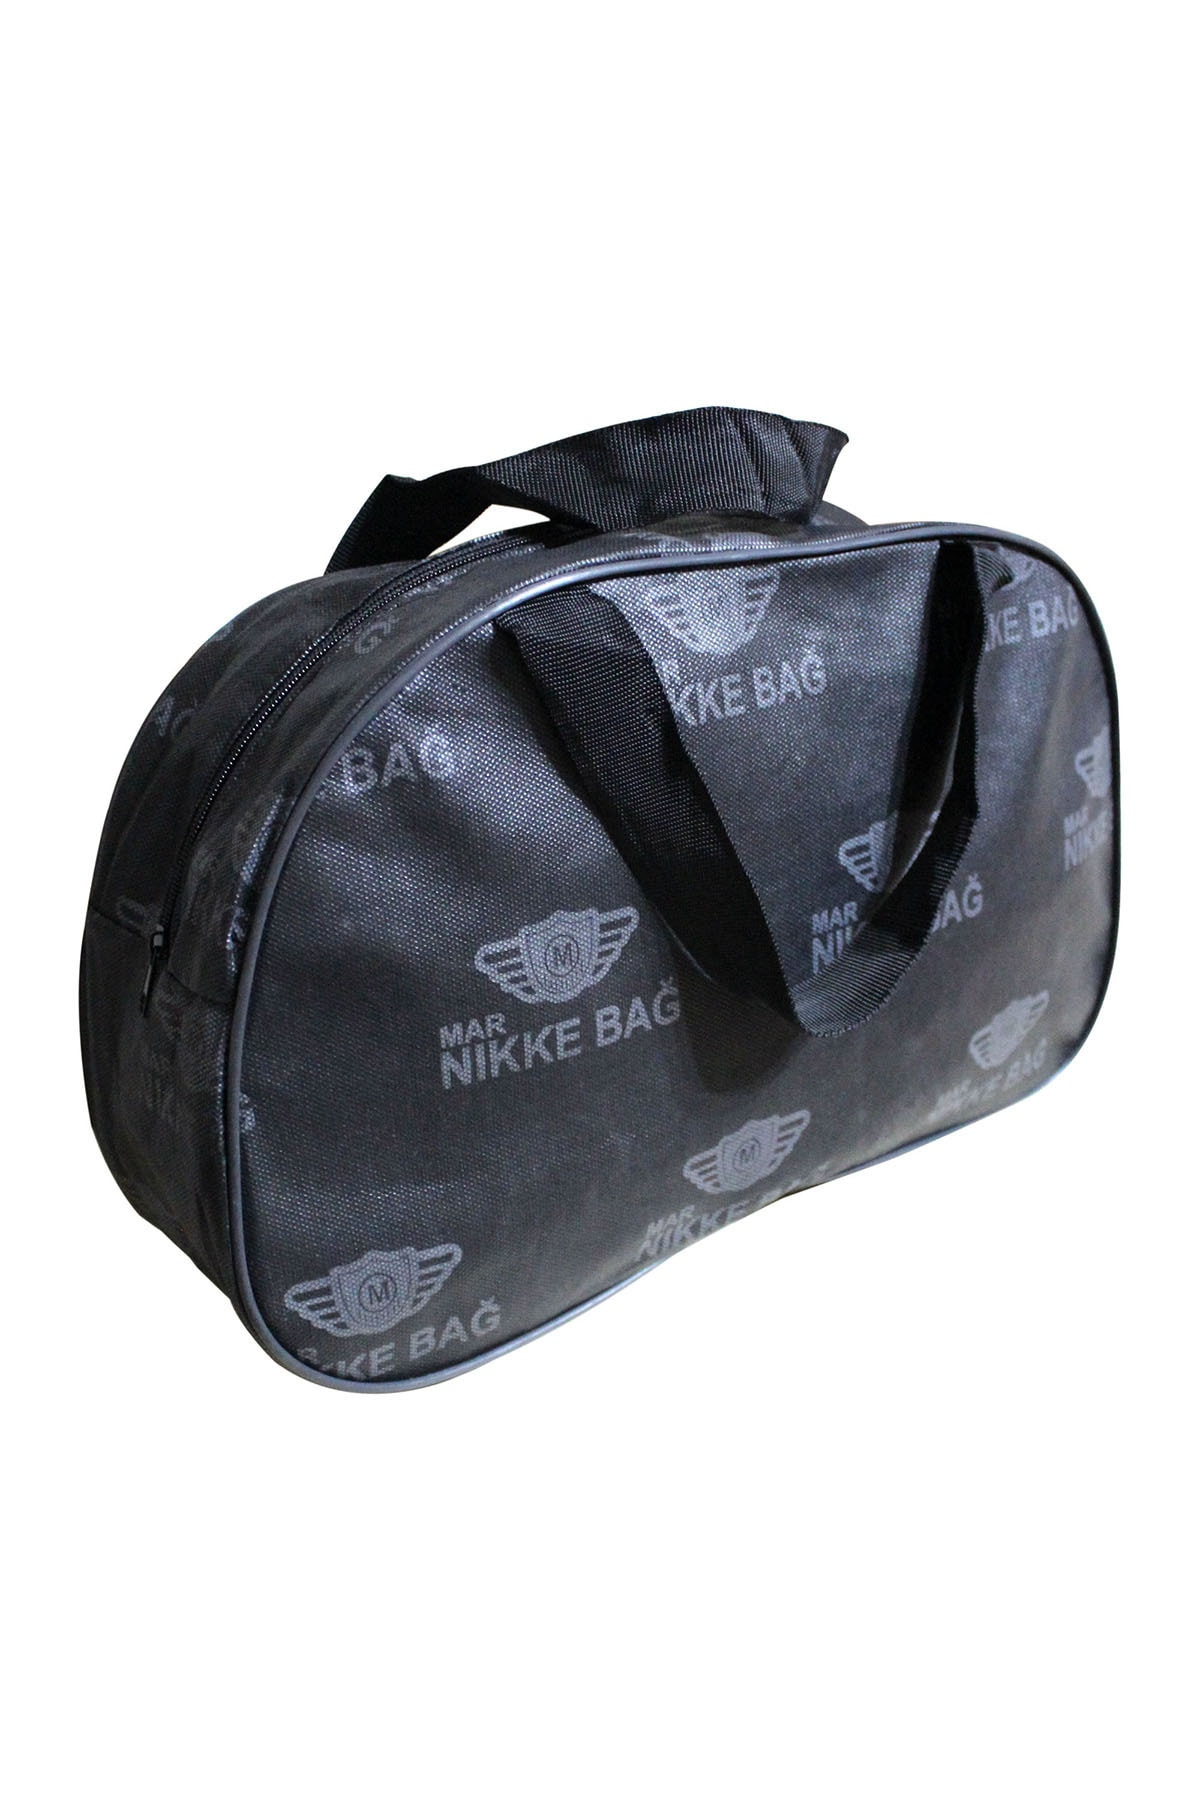 Unisex Black Sports Bag, Solid, Economic, Convenient, Large, Quality Zipper, for Daily Use Writing Printed